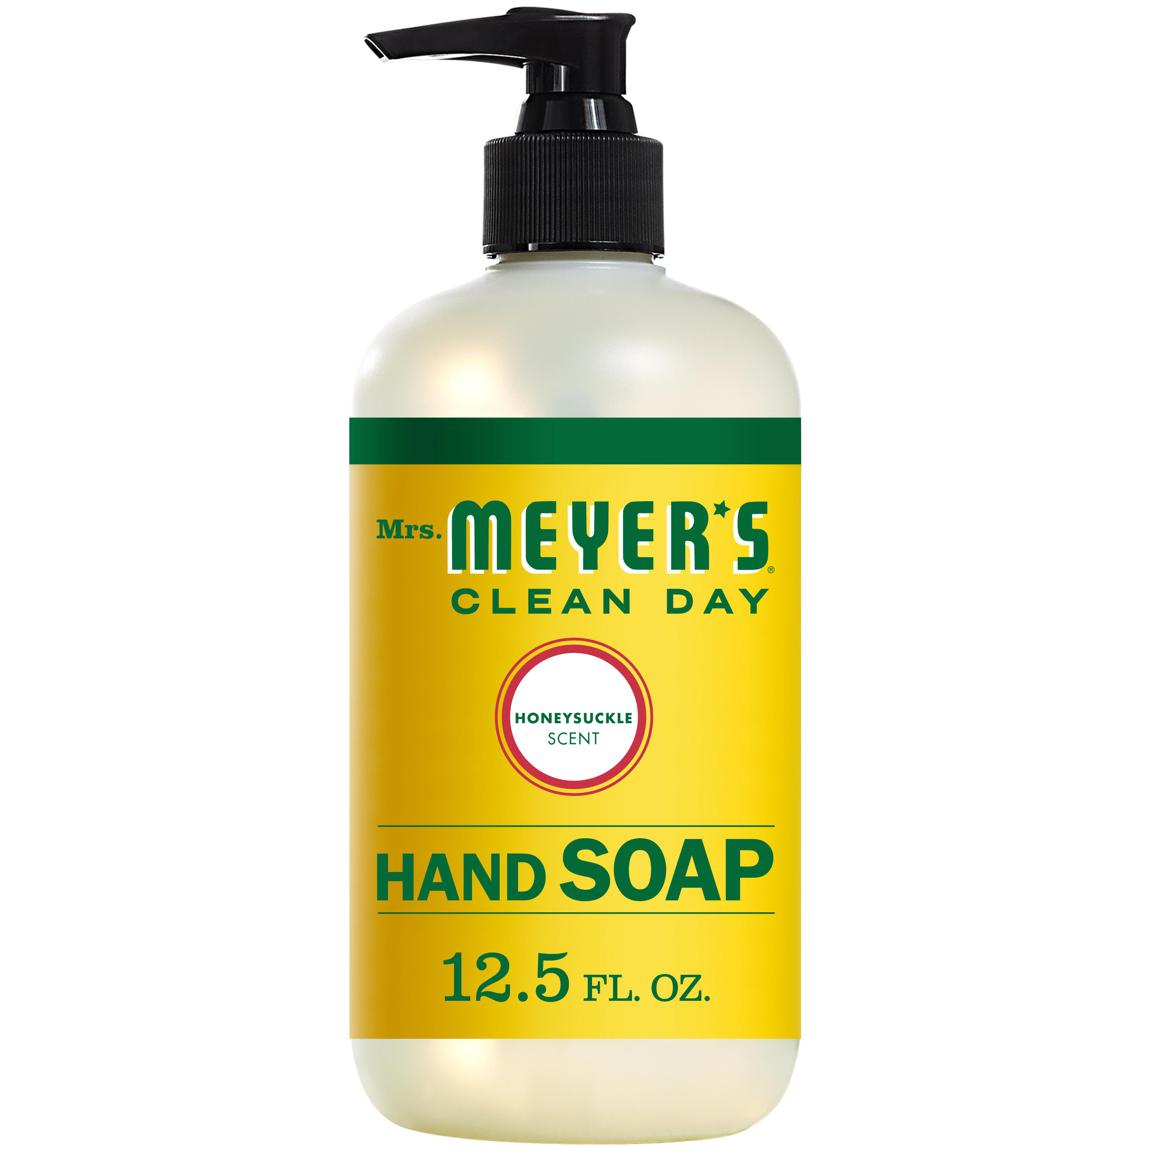 Mrs. Meyers Clean Day Liquid Hand Soap Bottle, Honeysuckle Scent